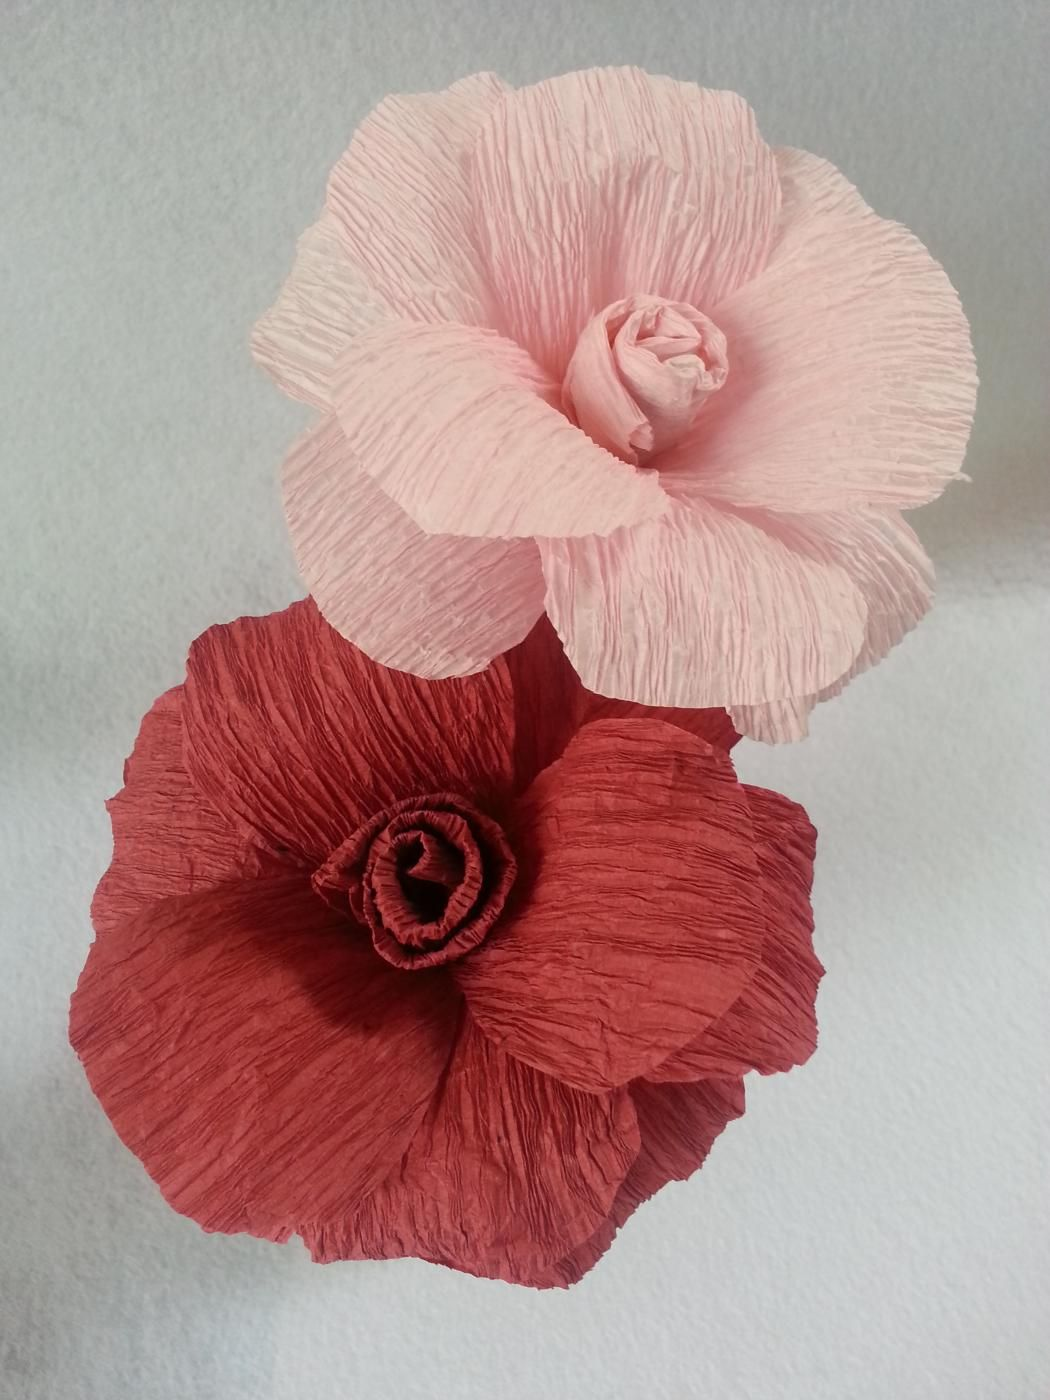 How to make crepe paper flowers dyi pinterest crepe paper learn how to make this easy rose flower using crepe paper streamers you can get these streamers at the dollar stores or craft stores mightylinksfo